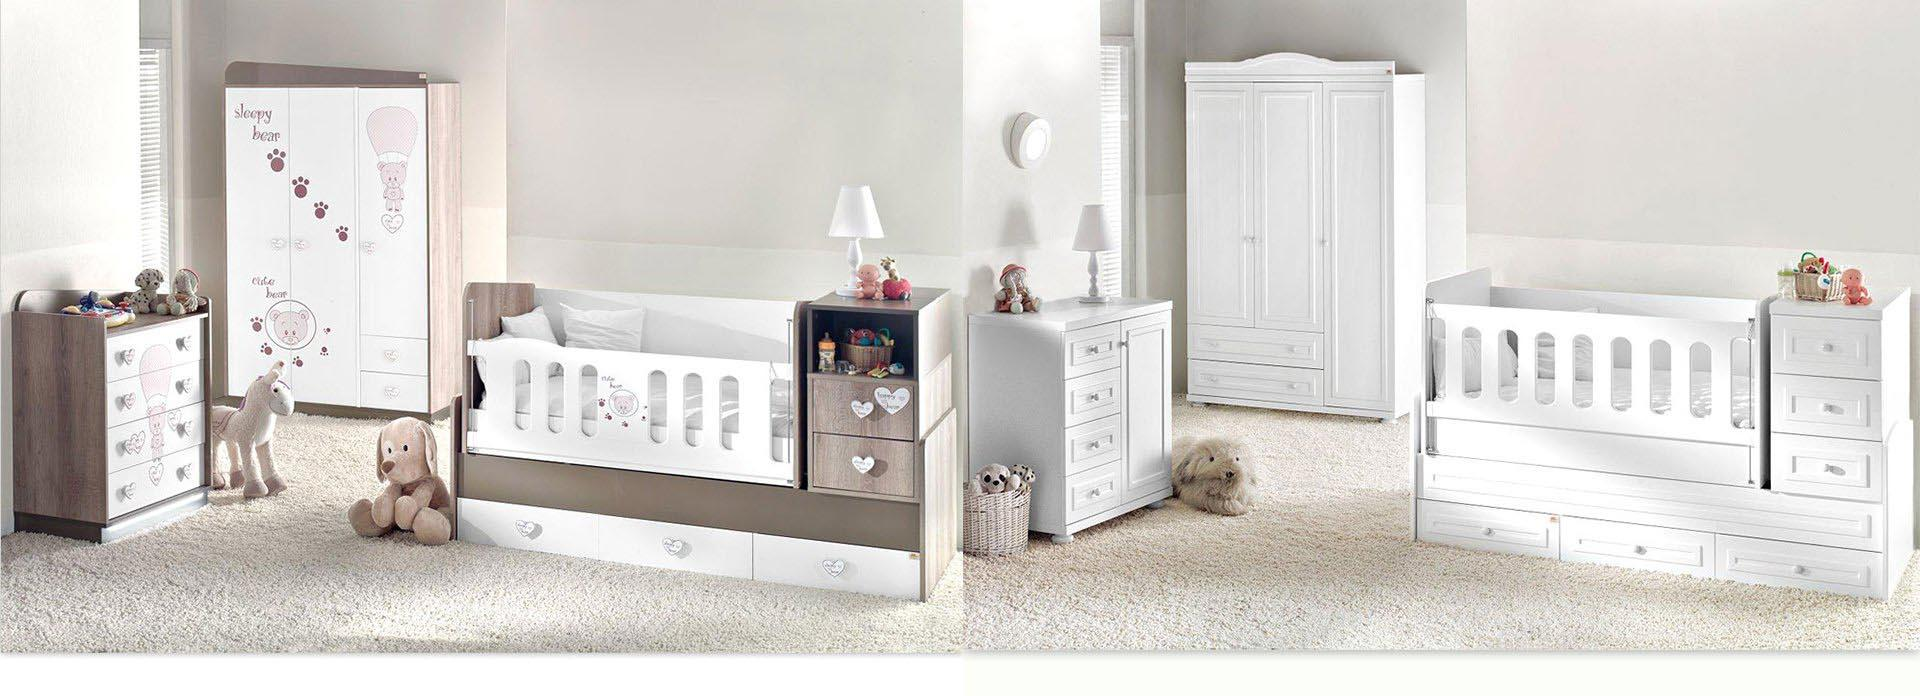 babyzimmer komplett weiss gnstige sets groe bild oder h jpg babyzimmer komplett set olivia wei. Black Bedroom Furniture Sets. Home Design Ideas